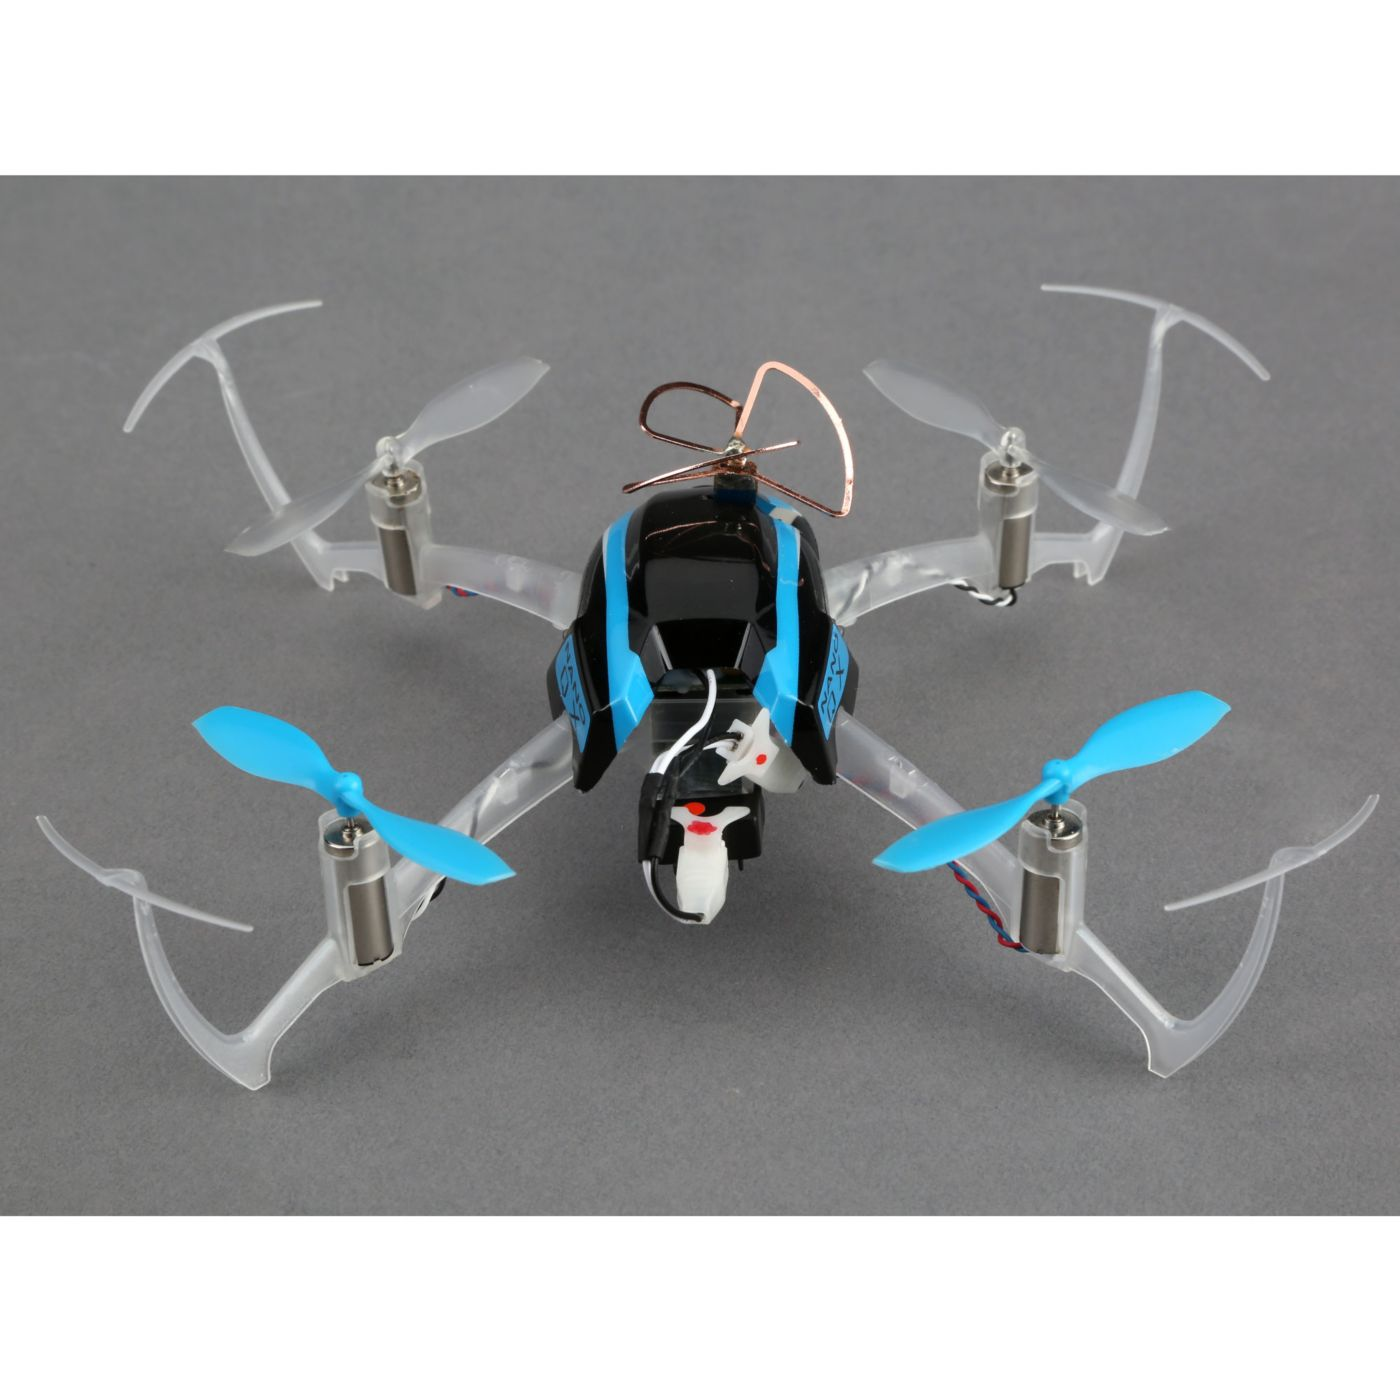 Nano QX FPV RTF with SAFE Technology ...  sc 1 st  Horizon Hobby & Blade Nano QX FPV RTF Ultra-Micro RC Quadcopter with Fat Shark ...